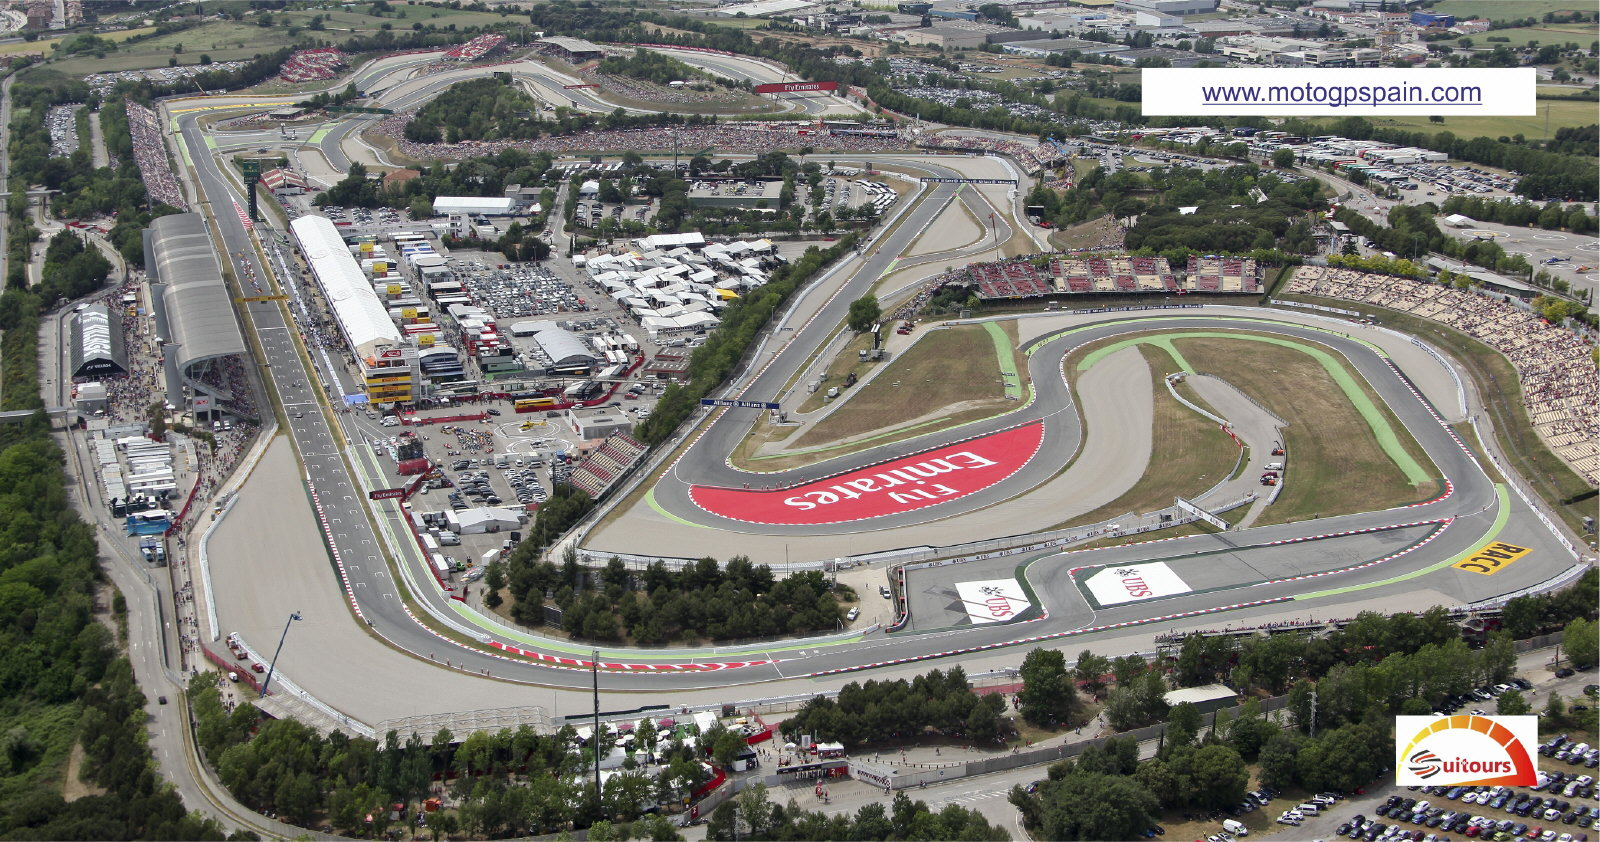 Bird's eye view of the Circuit de Barcelona-Catalunya